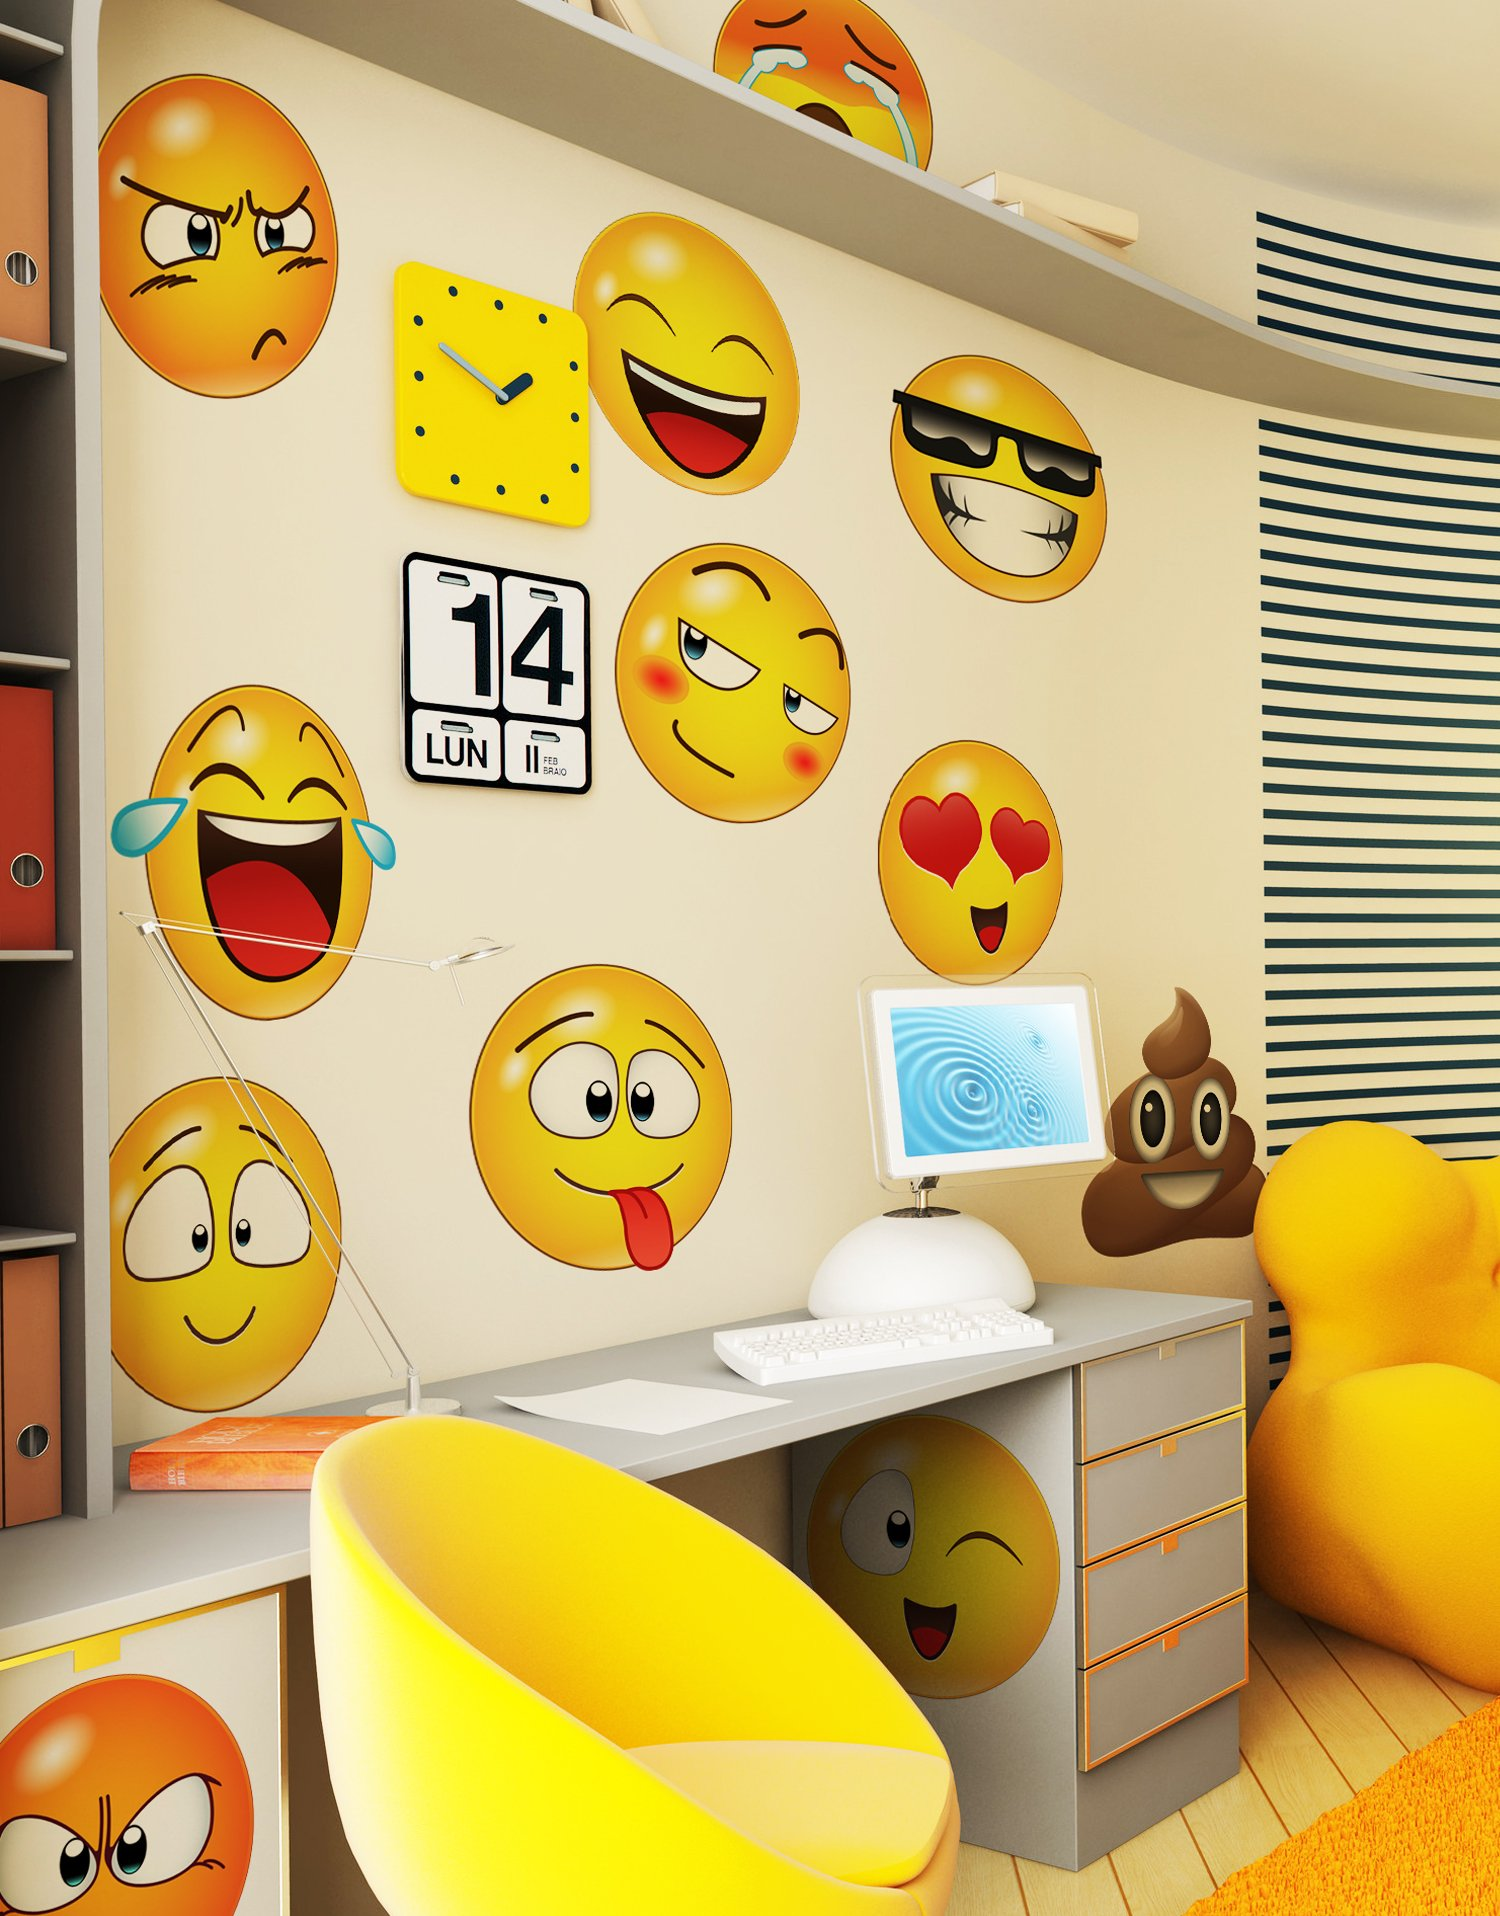 12 Large Emoji Wall Decal Faces Sticker #6052s 10in X 10in Each by Stickerbrand (Image #2)